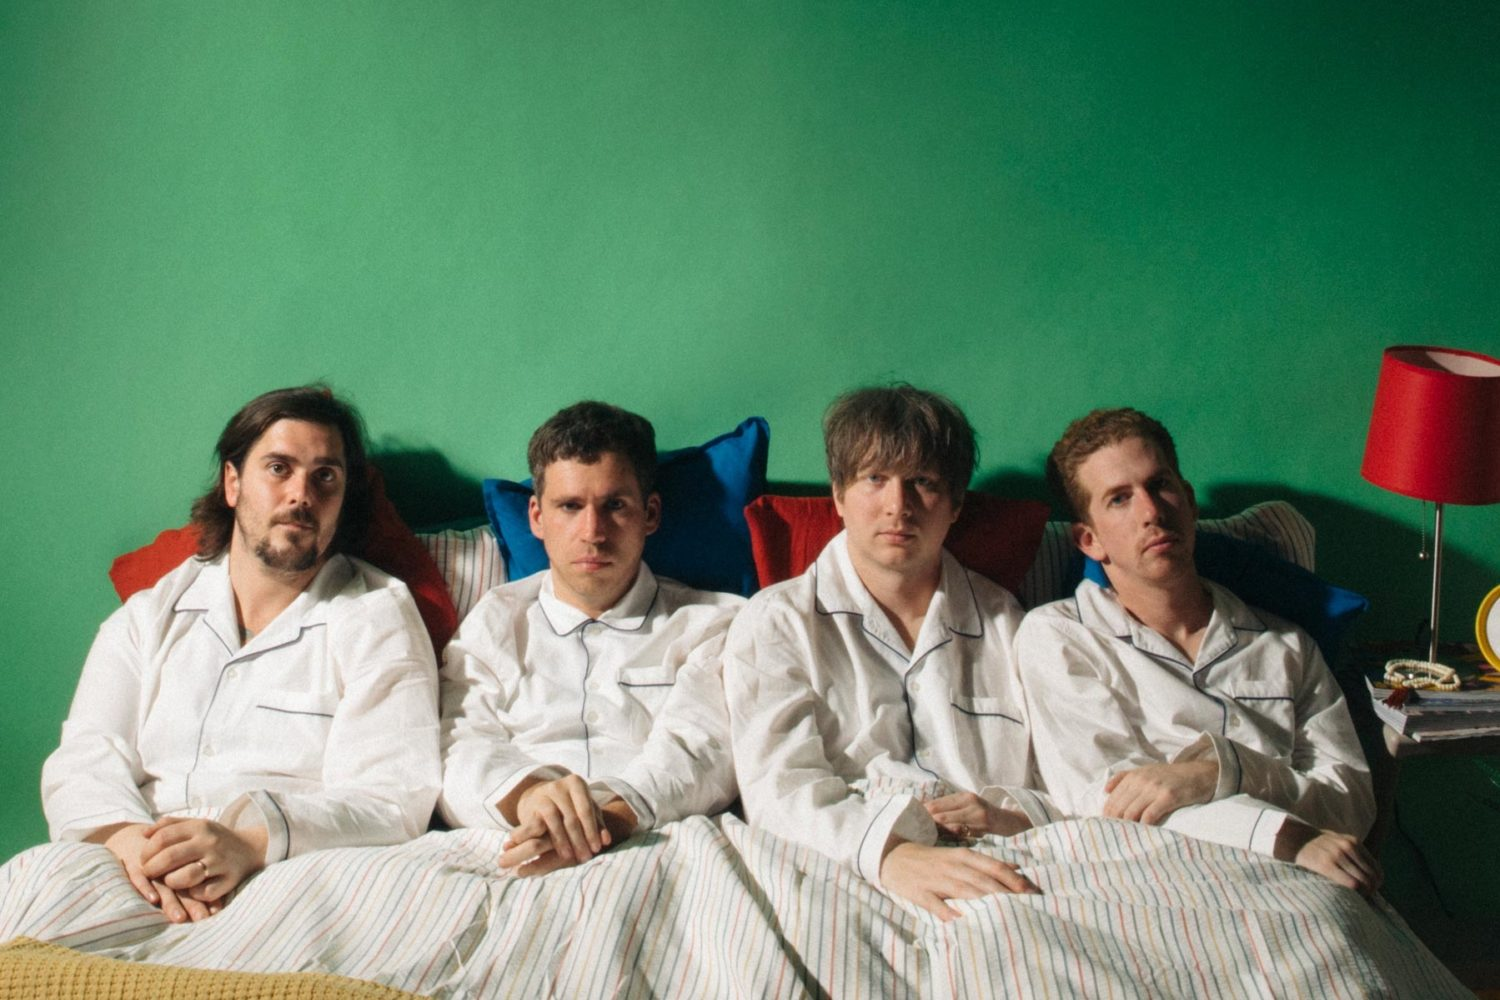 Tracks: Parquet Courts, Janelle Monáe, Father John Misty, Sunflower Bean and more